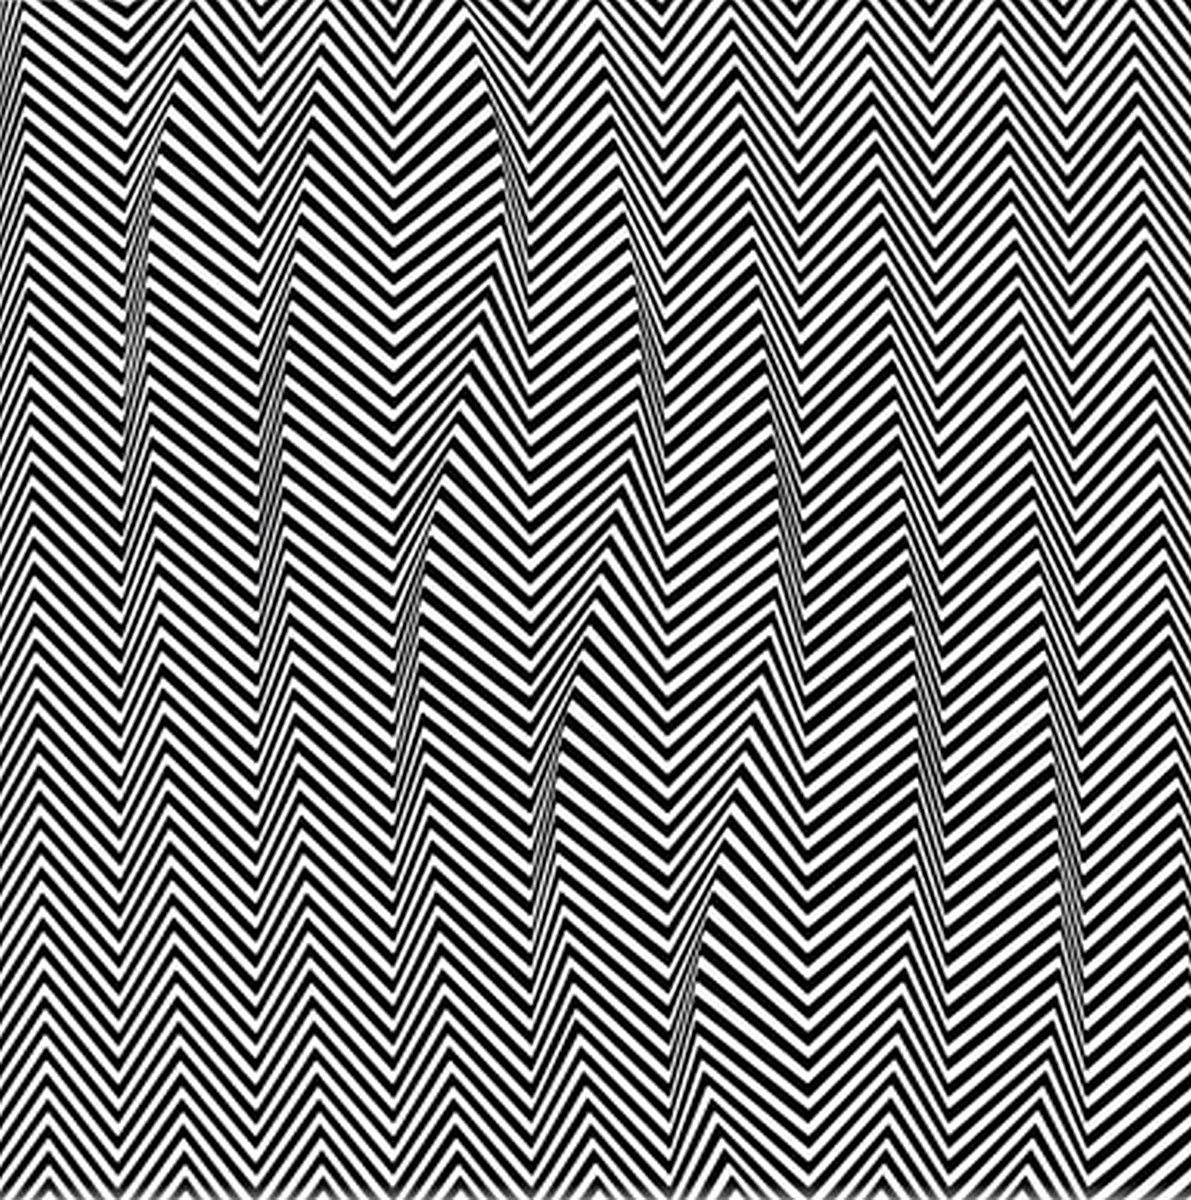 The Work of Bridget Riley: Juxtapoz-BridgetRiley04.jpg